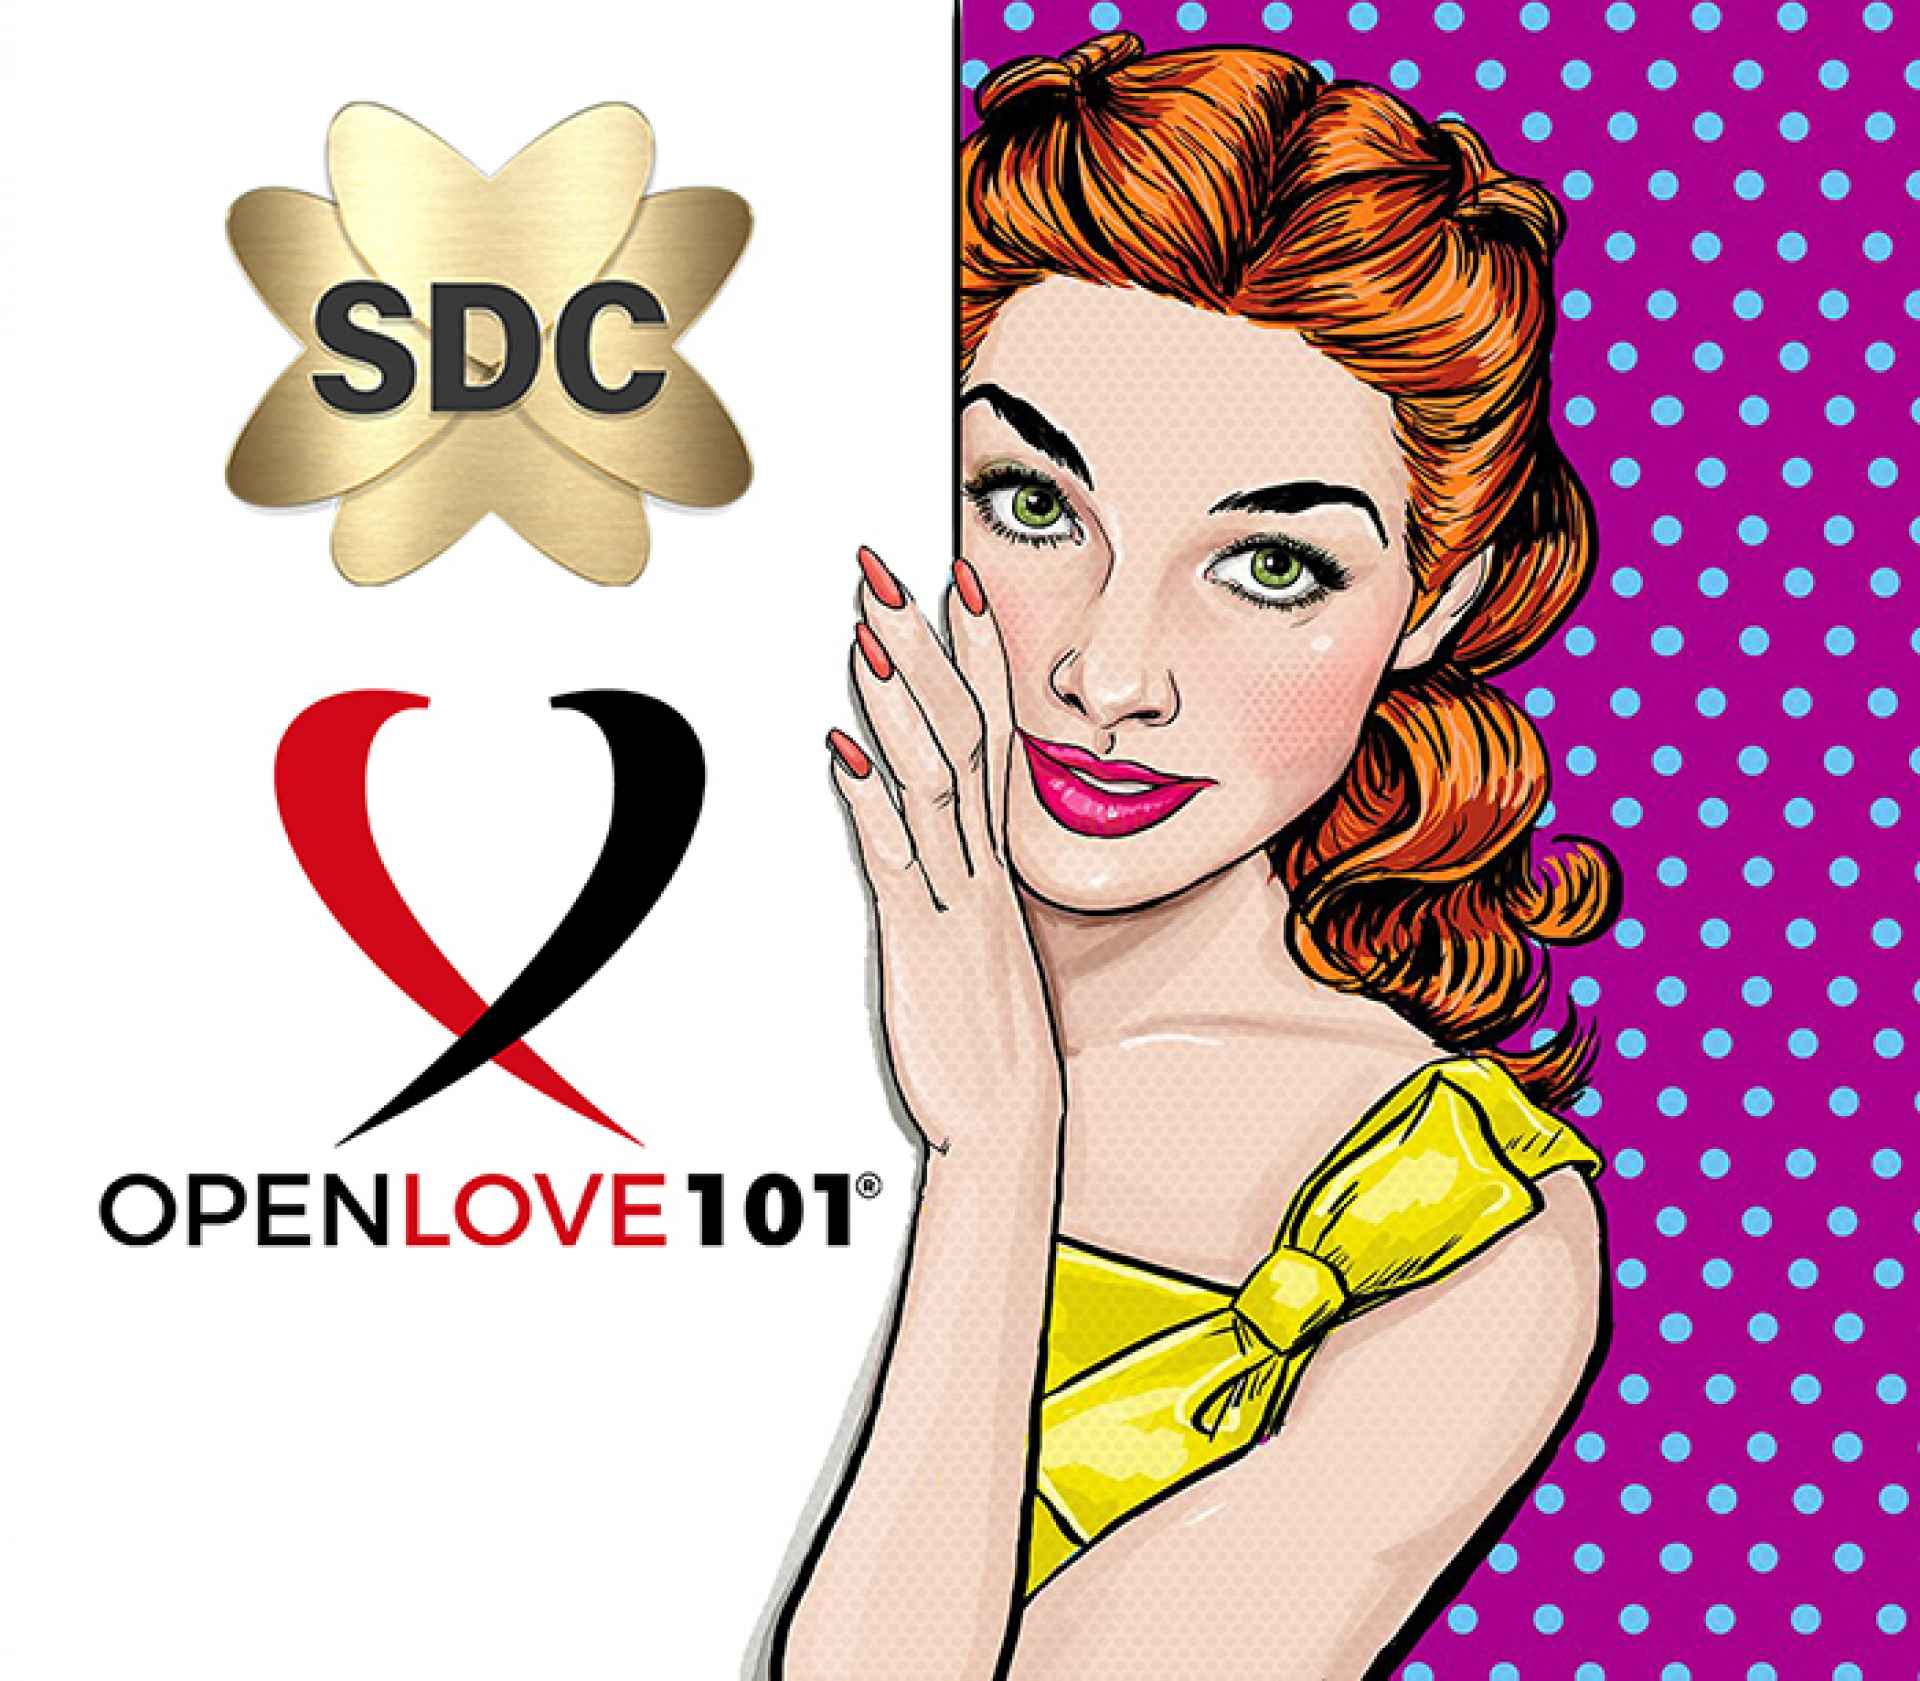 Openlove 101 SDC Newbie Lifestyle Guide Attendees